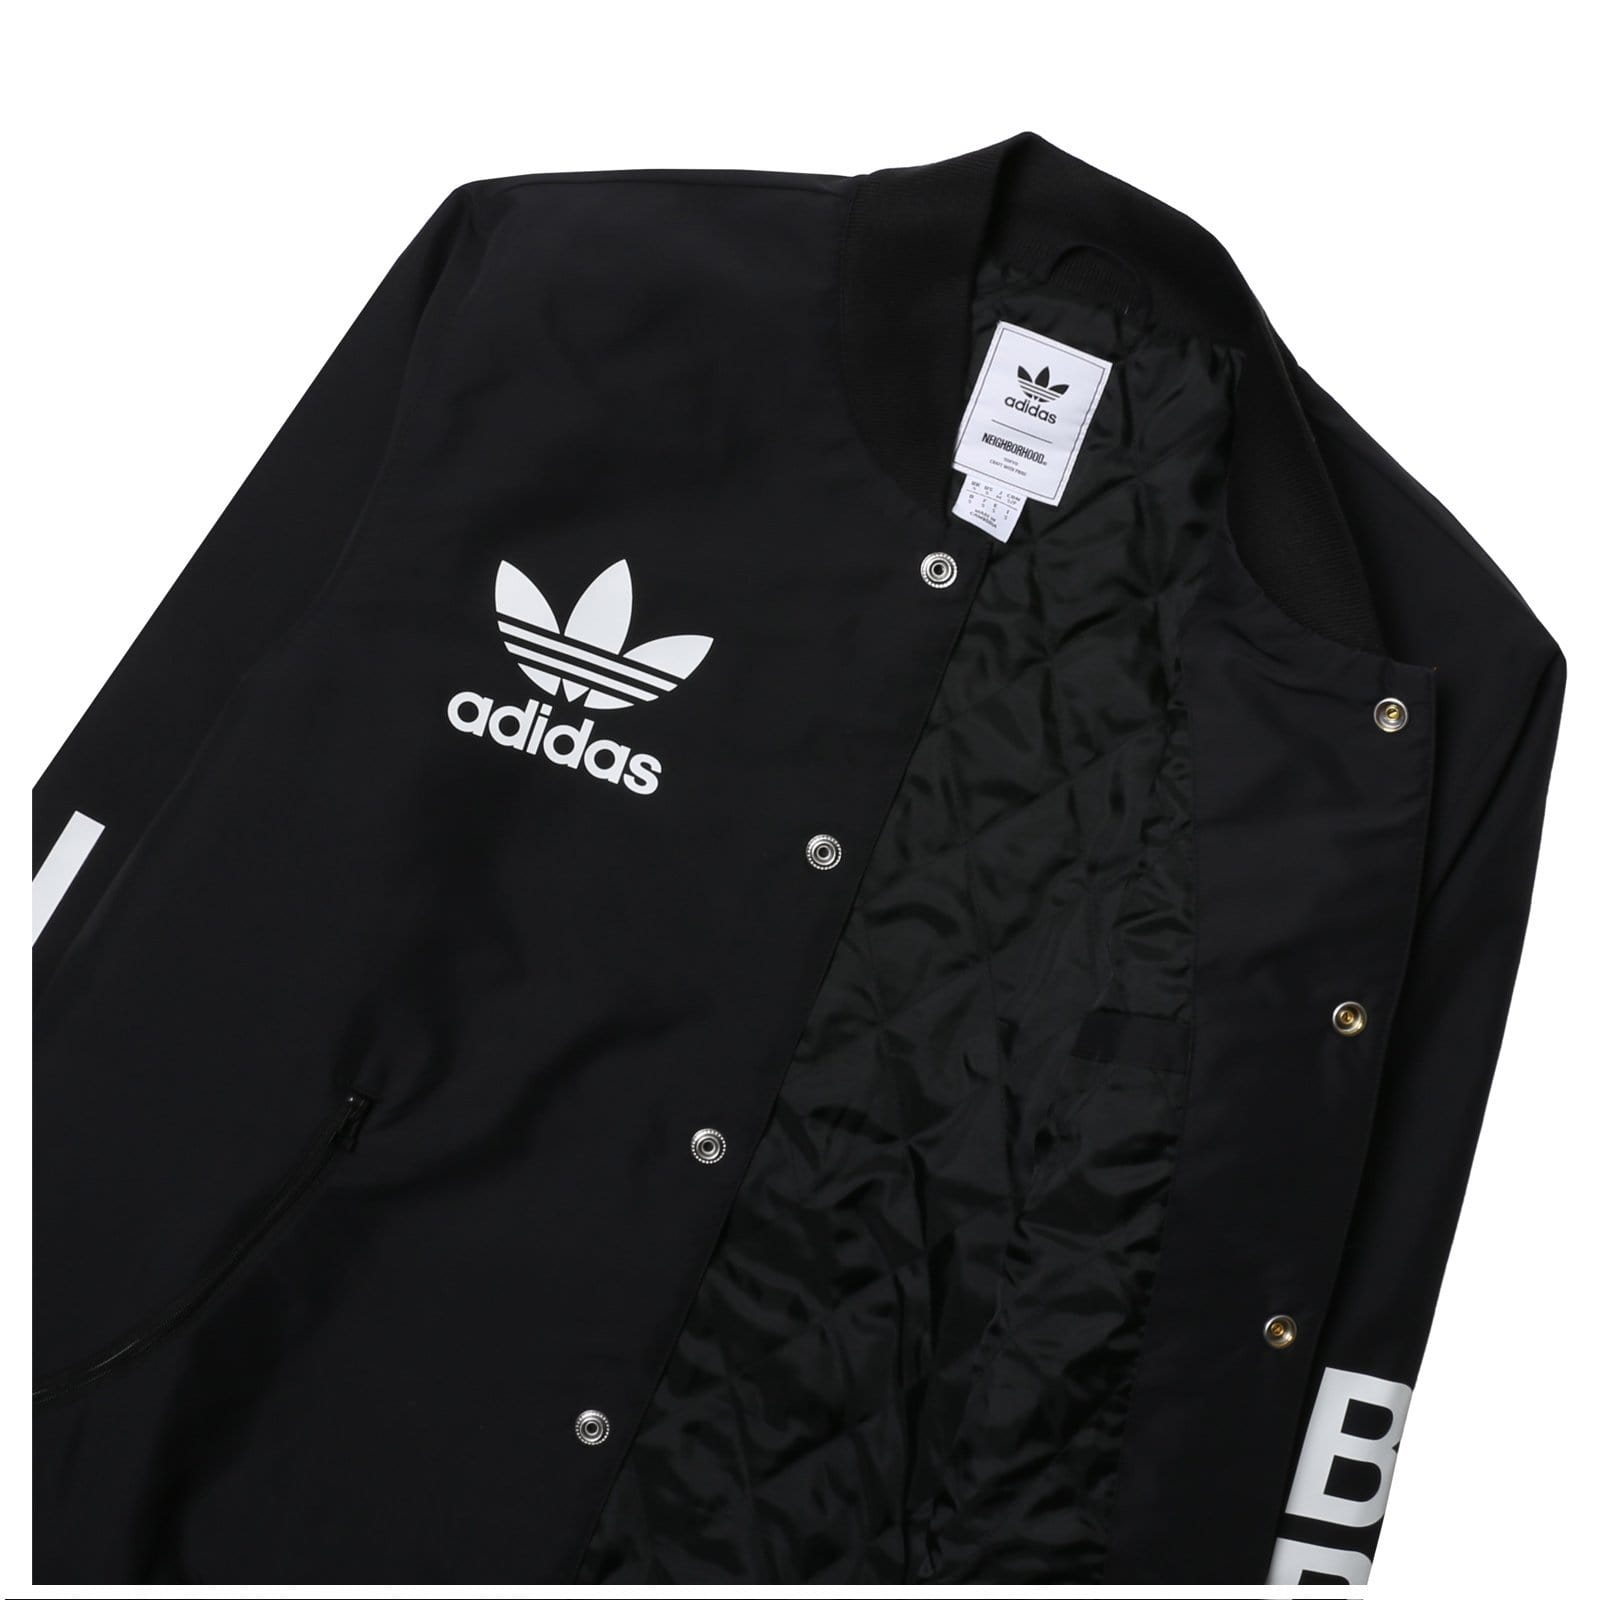 Adidas Outerwear x Neighborhood Stadium Jacket